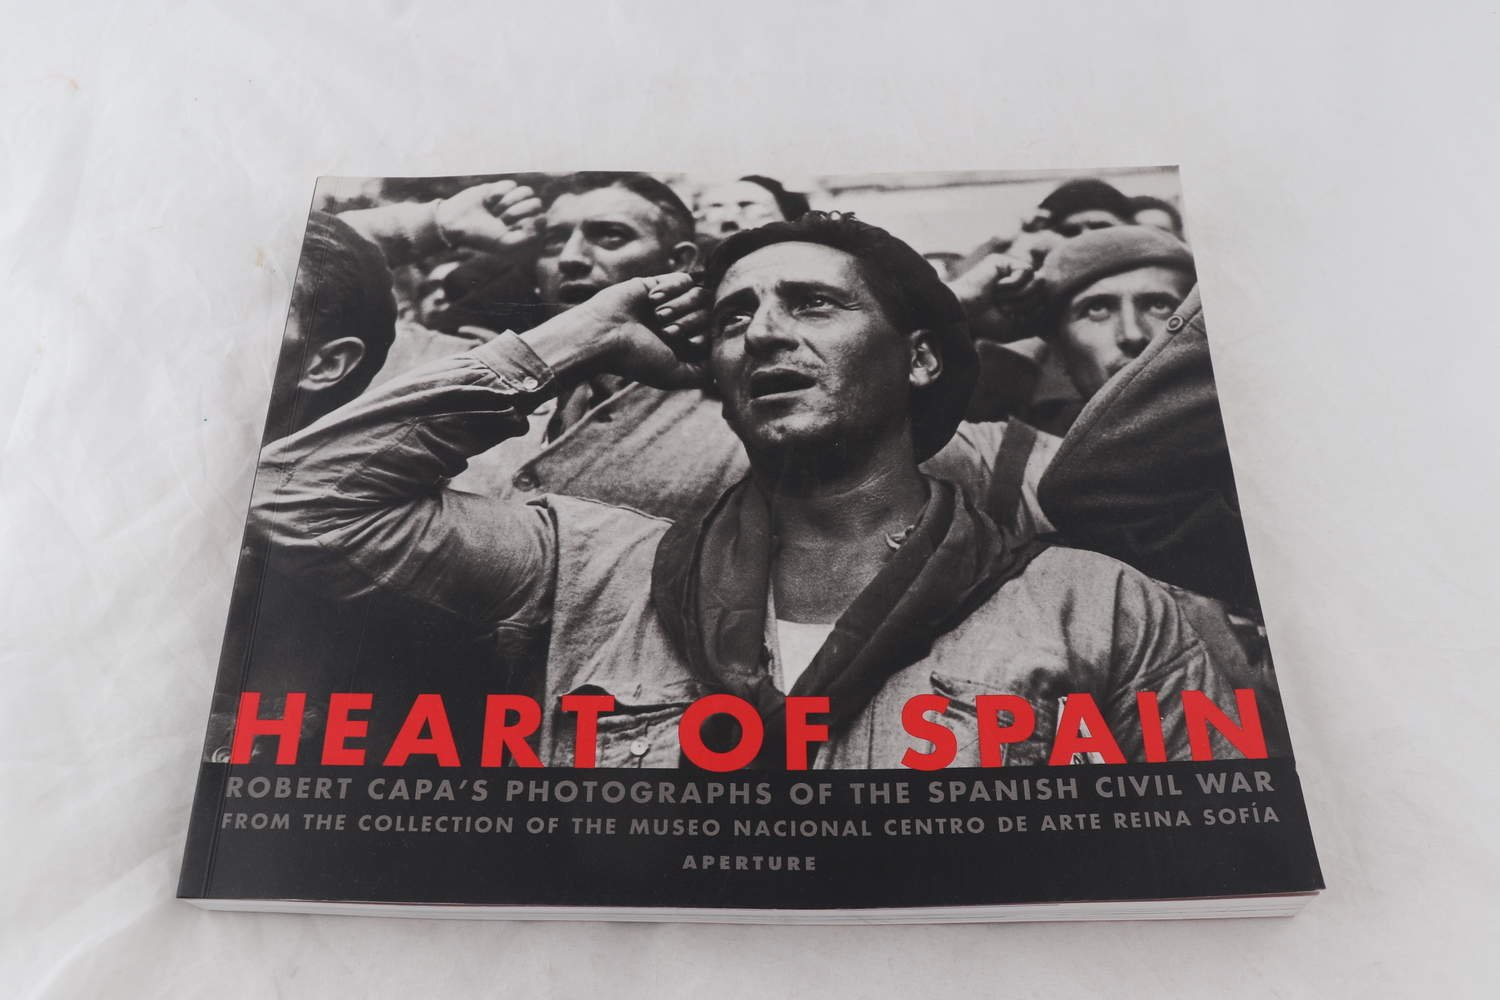 Bok, Robert Capa, Heart of Spain, 1999.